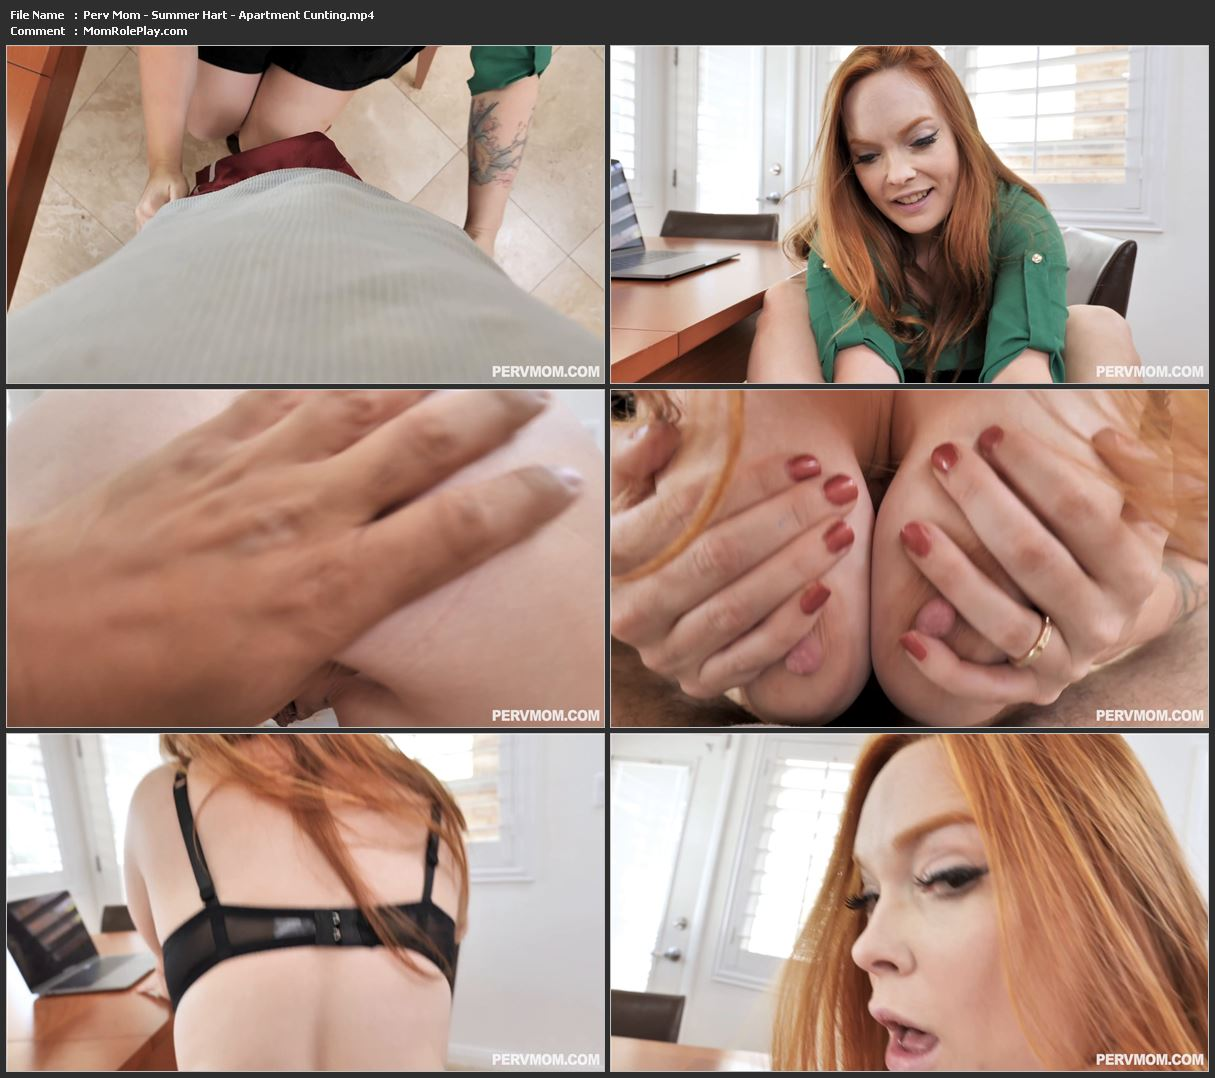 Perv Mom - Summer Hart - Apartment Cunting 1080p